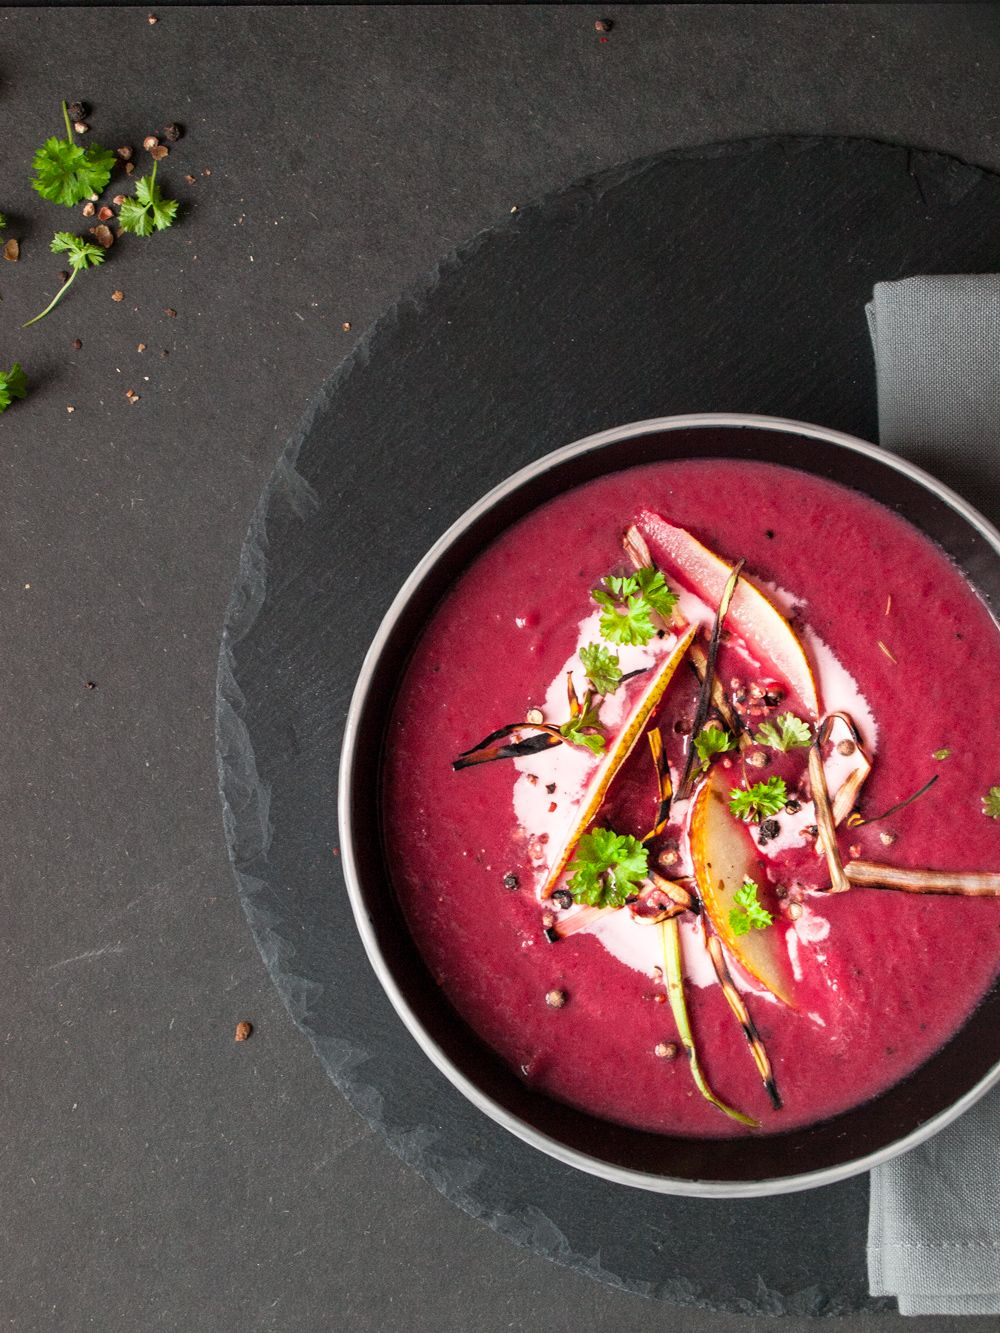 41+ Suppe mit rote bete ideen